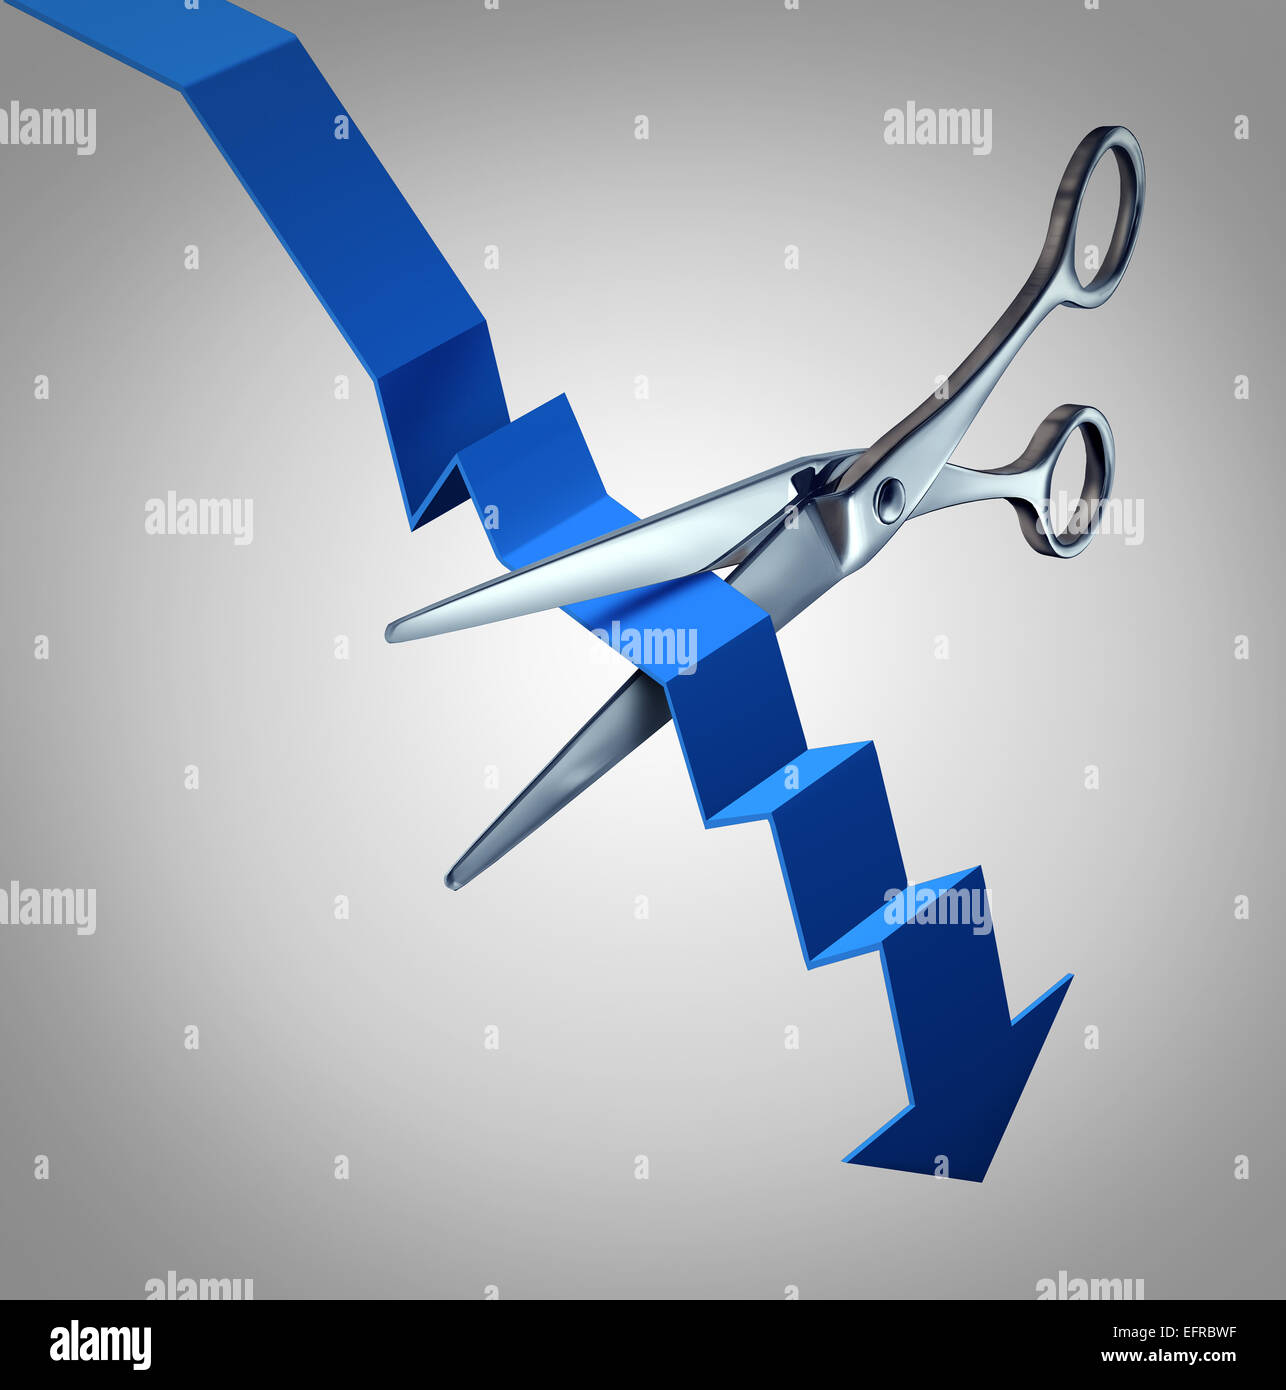 Cut losses financial concept to salvage an investment as scissors cutting a downward finance chart arrow as a business - Stock Image